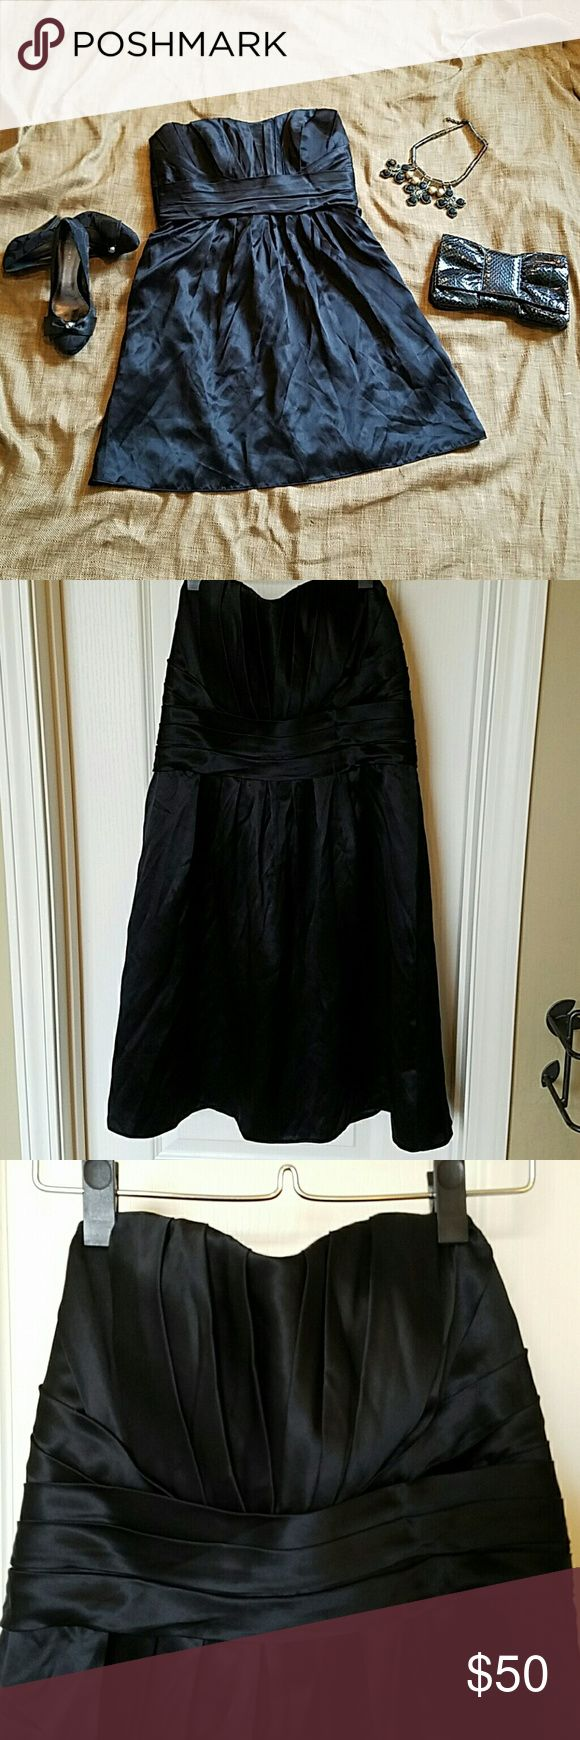 Priscilla of Boston Black Silk Cocktail Dress Ready for a cocktail party, ballet, or whatever you feel like dressing to the nines for. Excellent used condition.  Non smoking environment. Priscilla of Boston Dresses Strapless